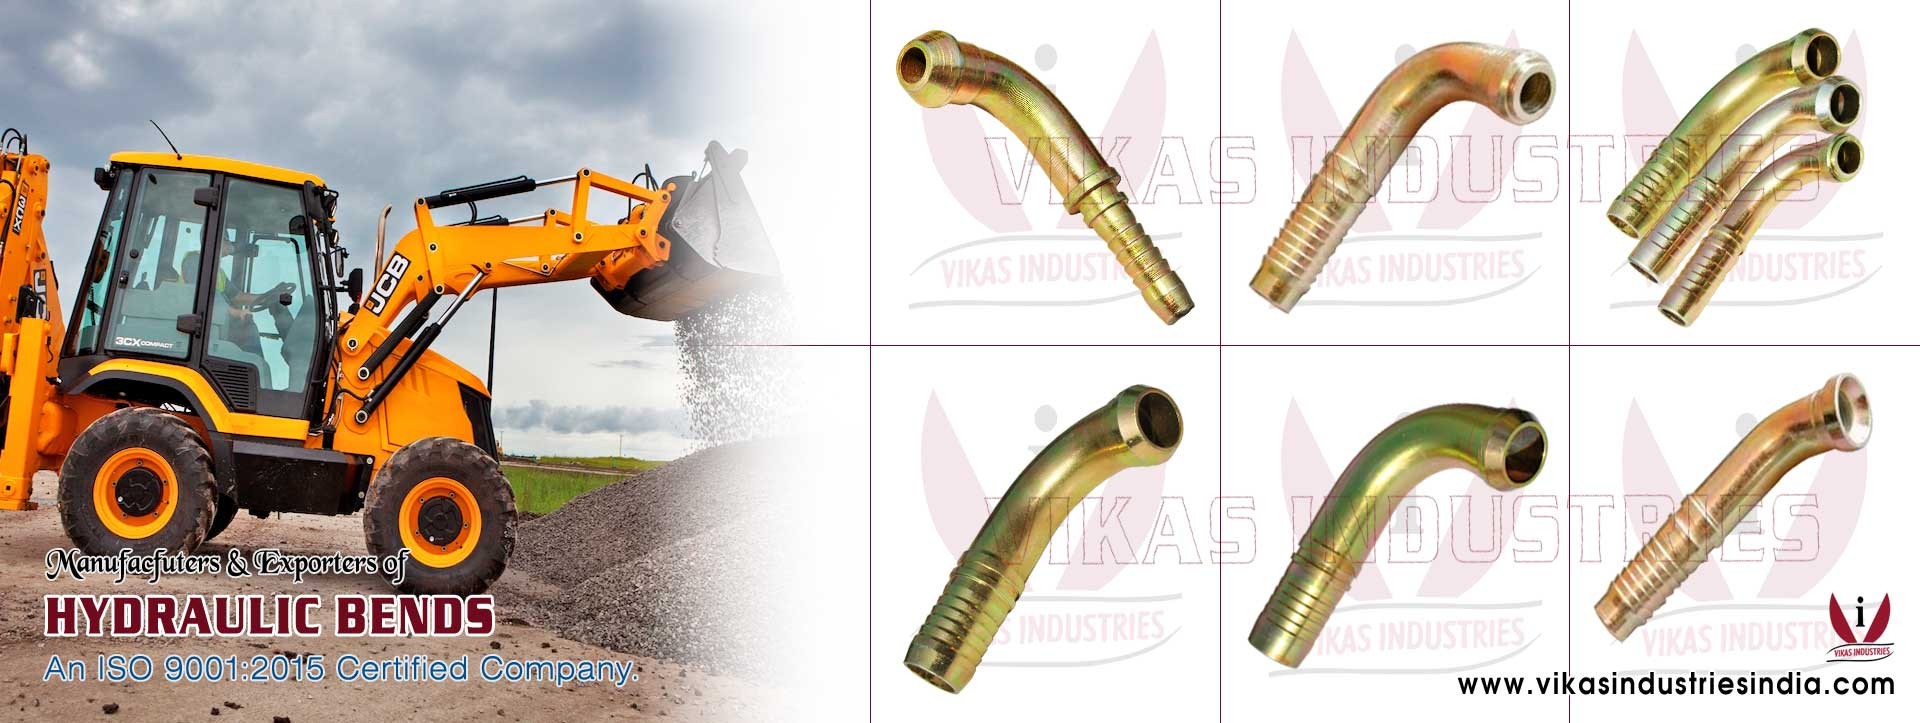 Hydraulic Bends manufacturers suppliers exporters distributors dealers from India punjab ludhiana